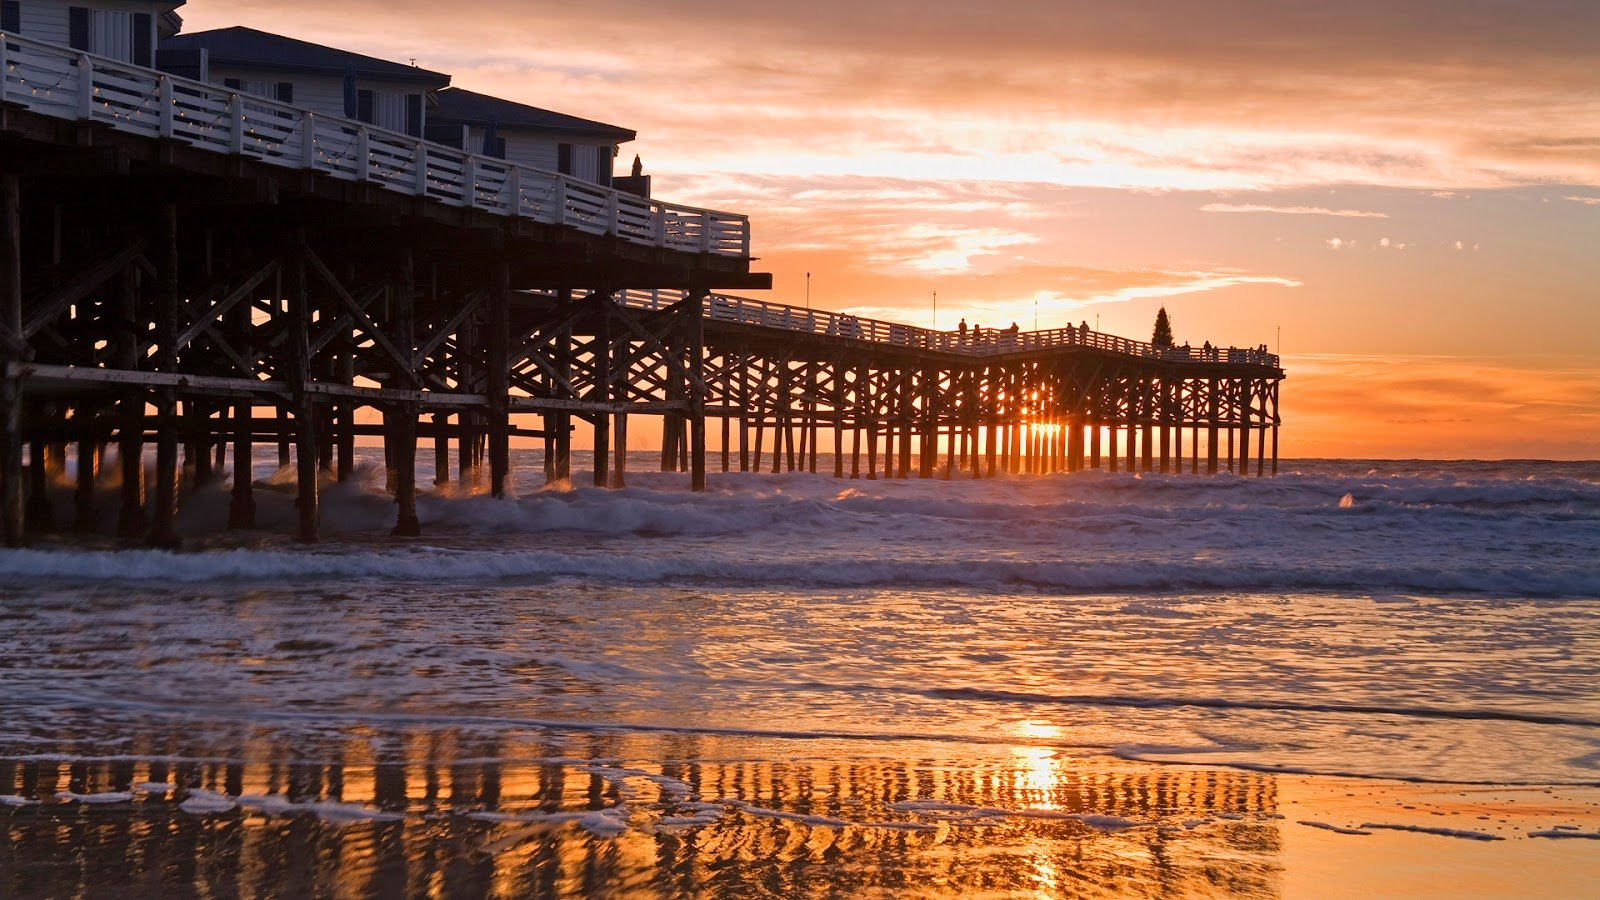 Beautiful beach from afternoon at San Diego This wallpaper san diego 1600x900